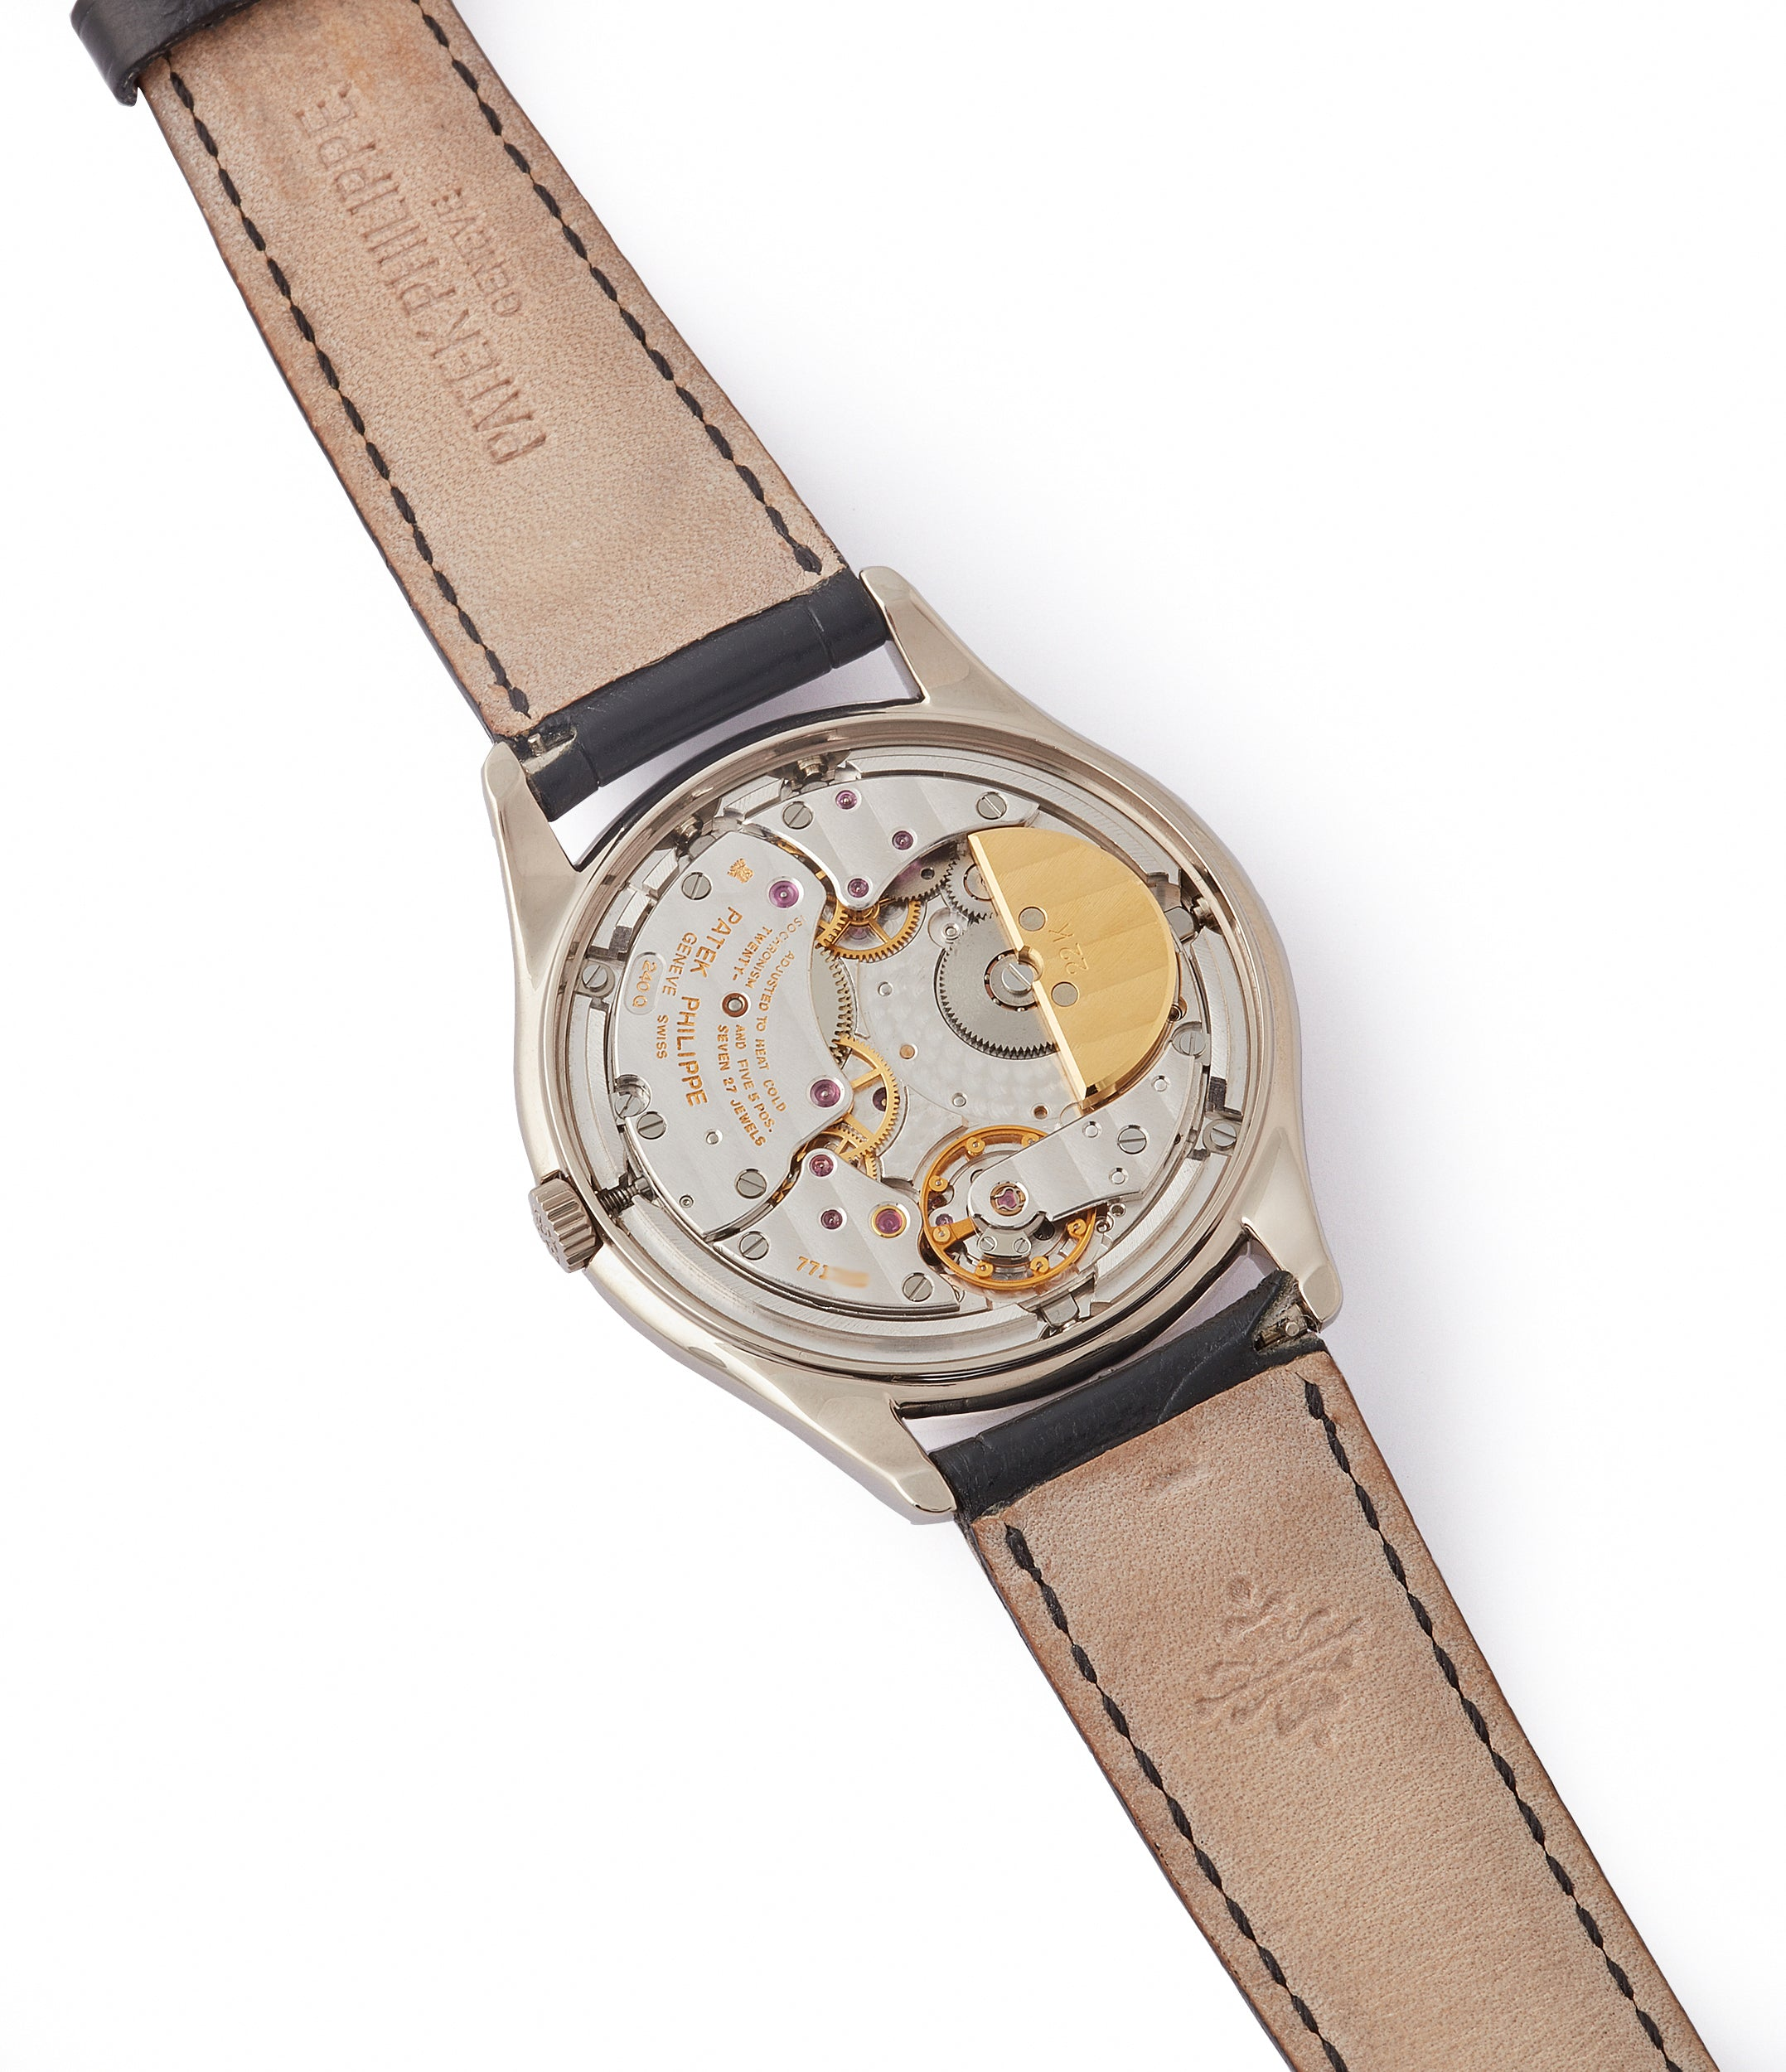 240Q automatic Patek Philippe 3940G Perpetual Calendar vintage rare watch English dial for sale online at A Collected Man London UK specialist of rare watches